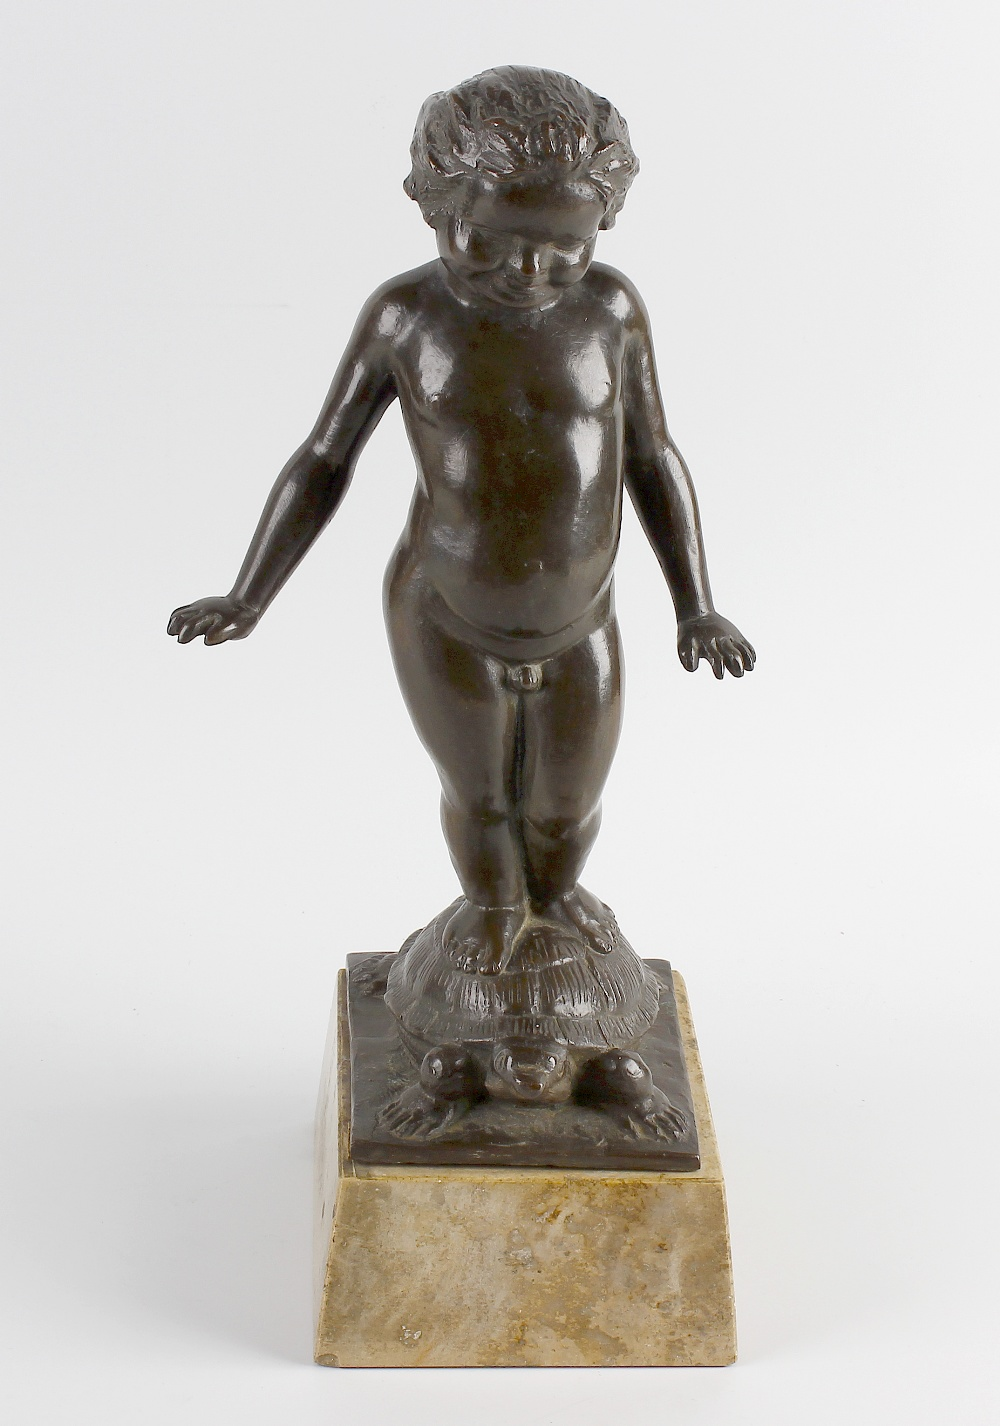 Lot 291 - Hans Parzinger. A cast bronze study of a naked young boy standing upon the back of a tortoise,